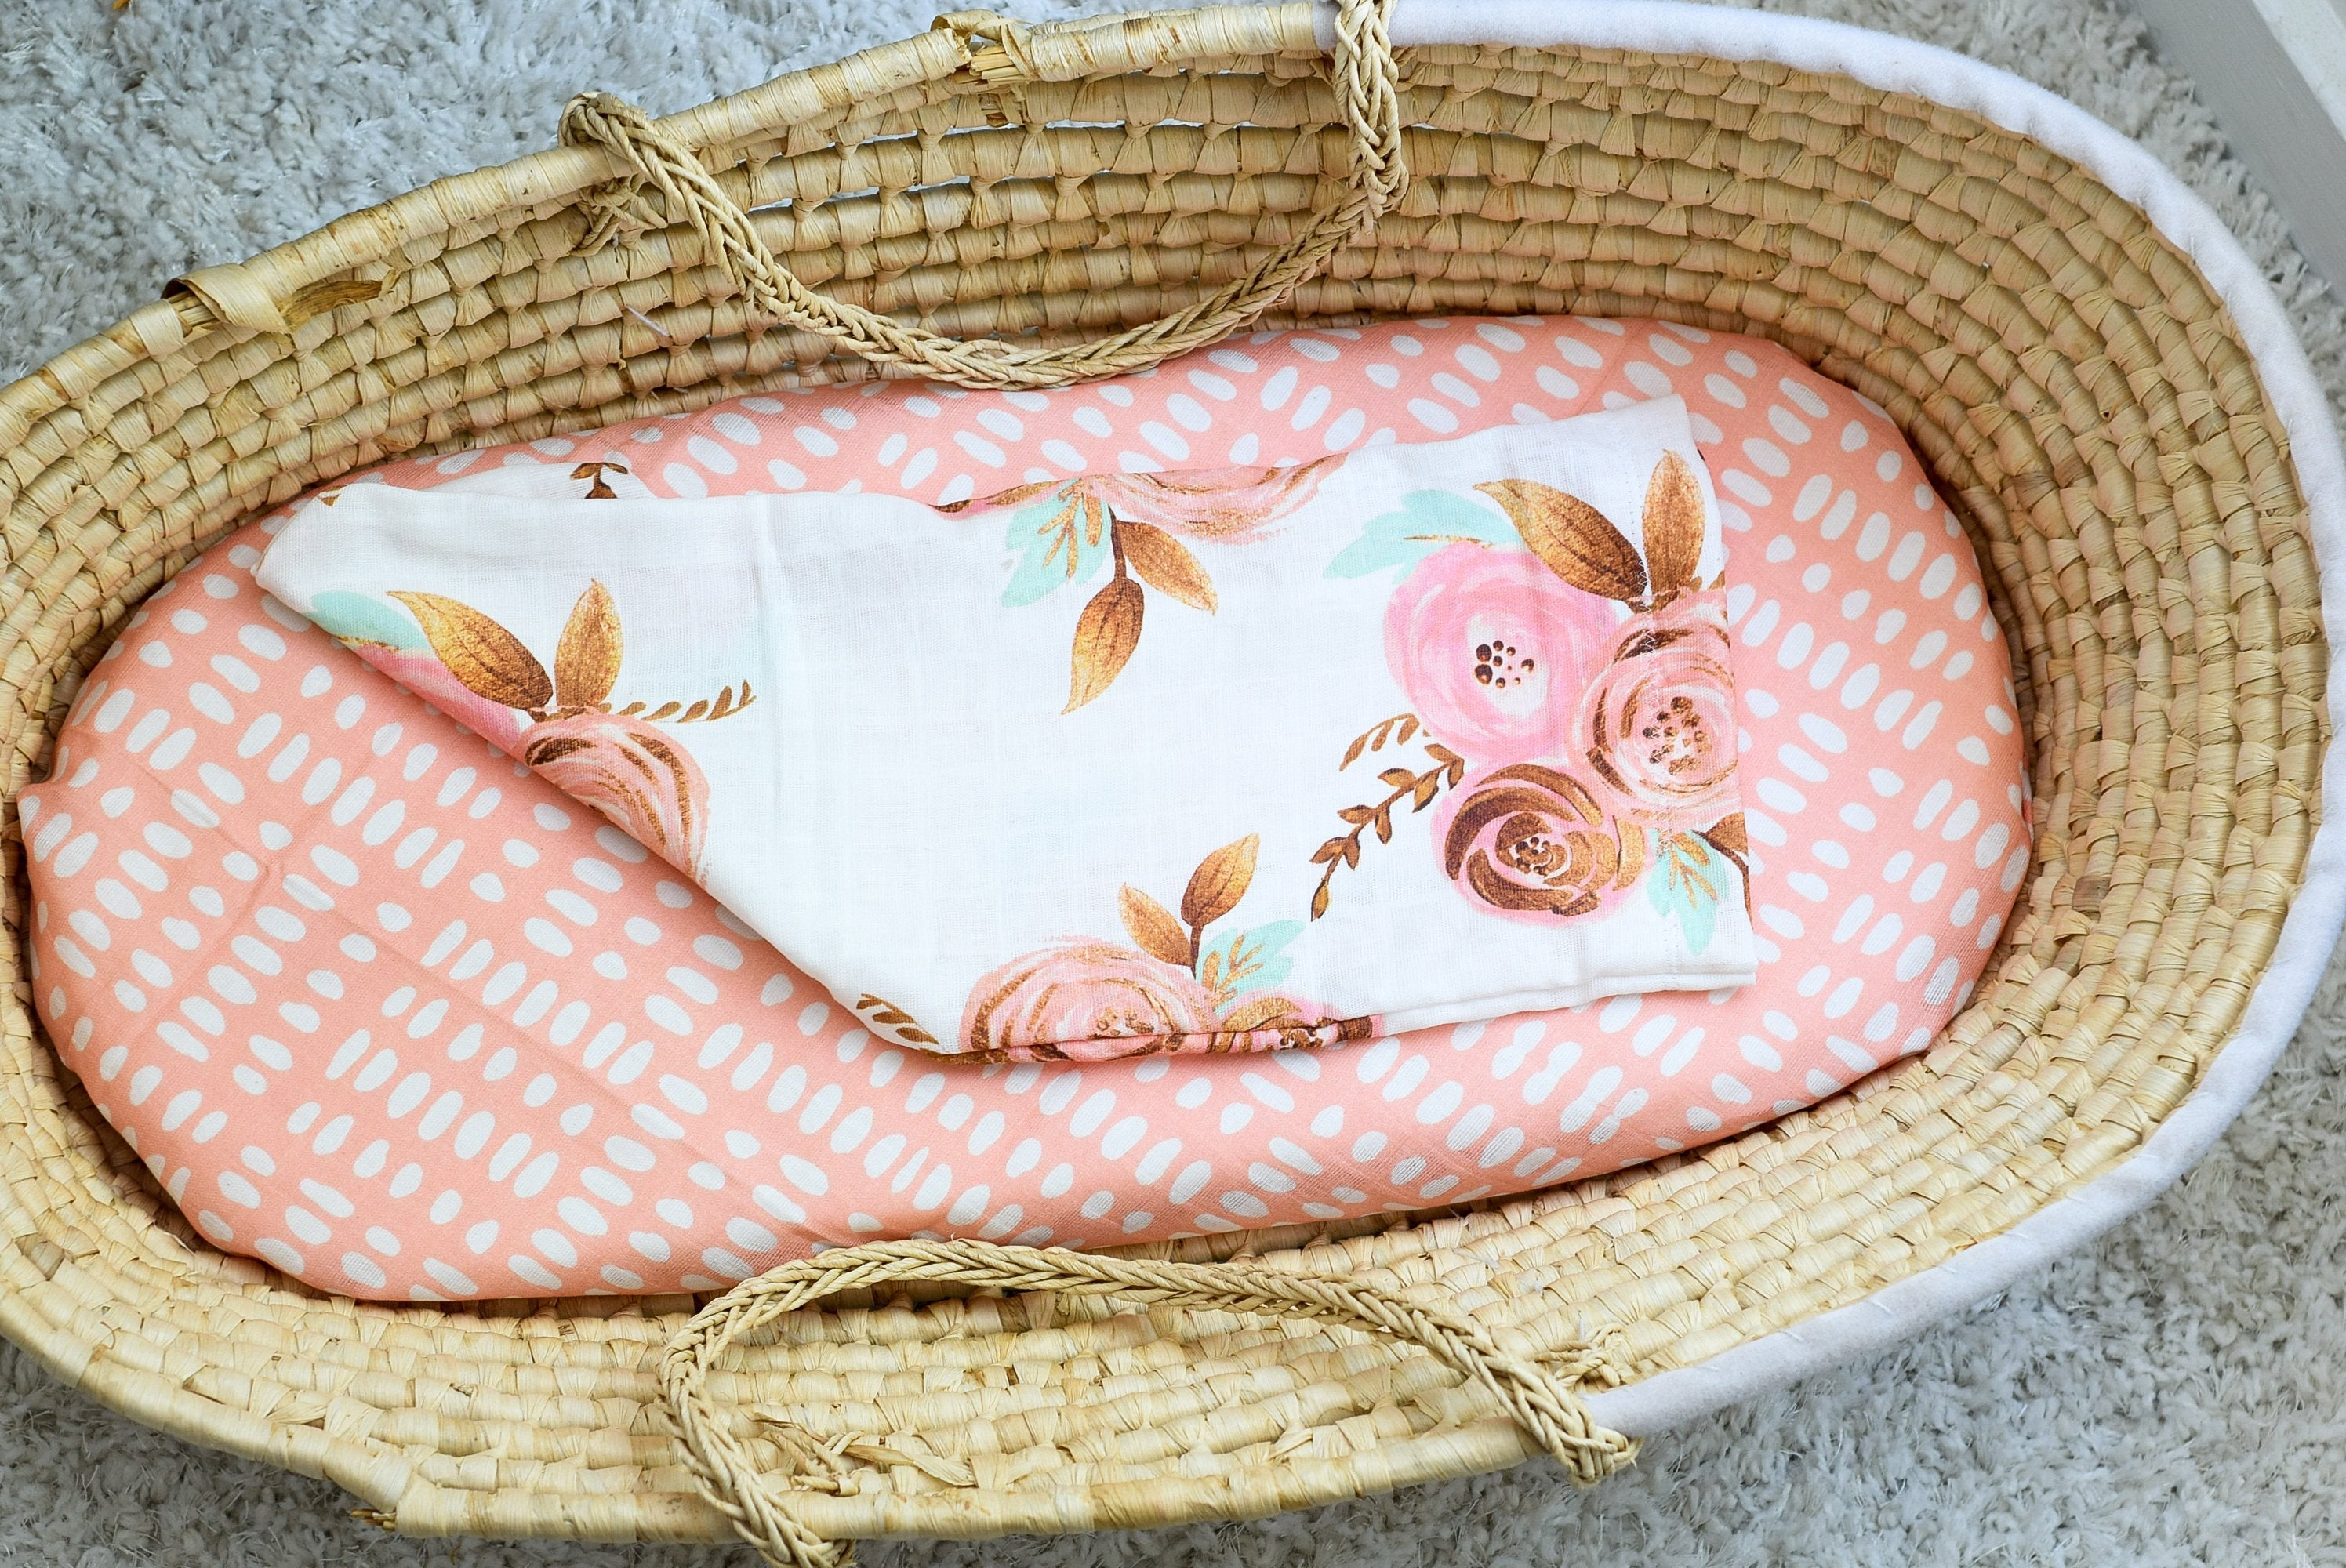 Gold Floral Swaddle Sack, Pink Flowers  Newborn Cocoon - Dream Evergreen @DreamEvergreen